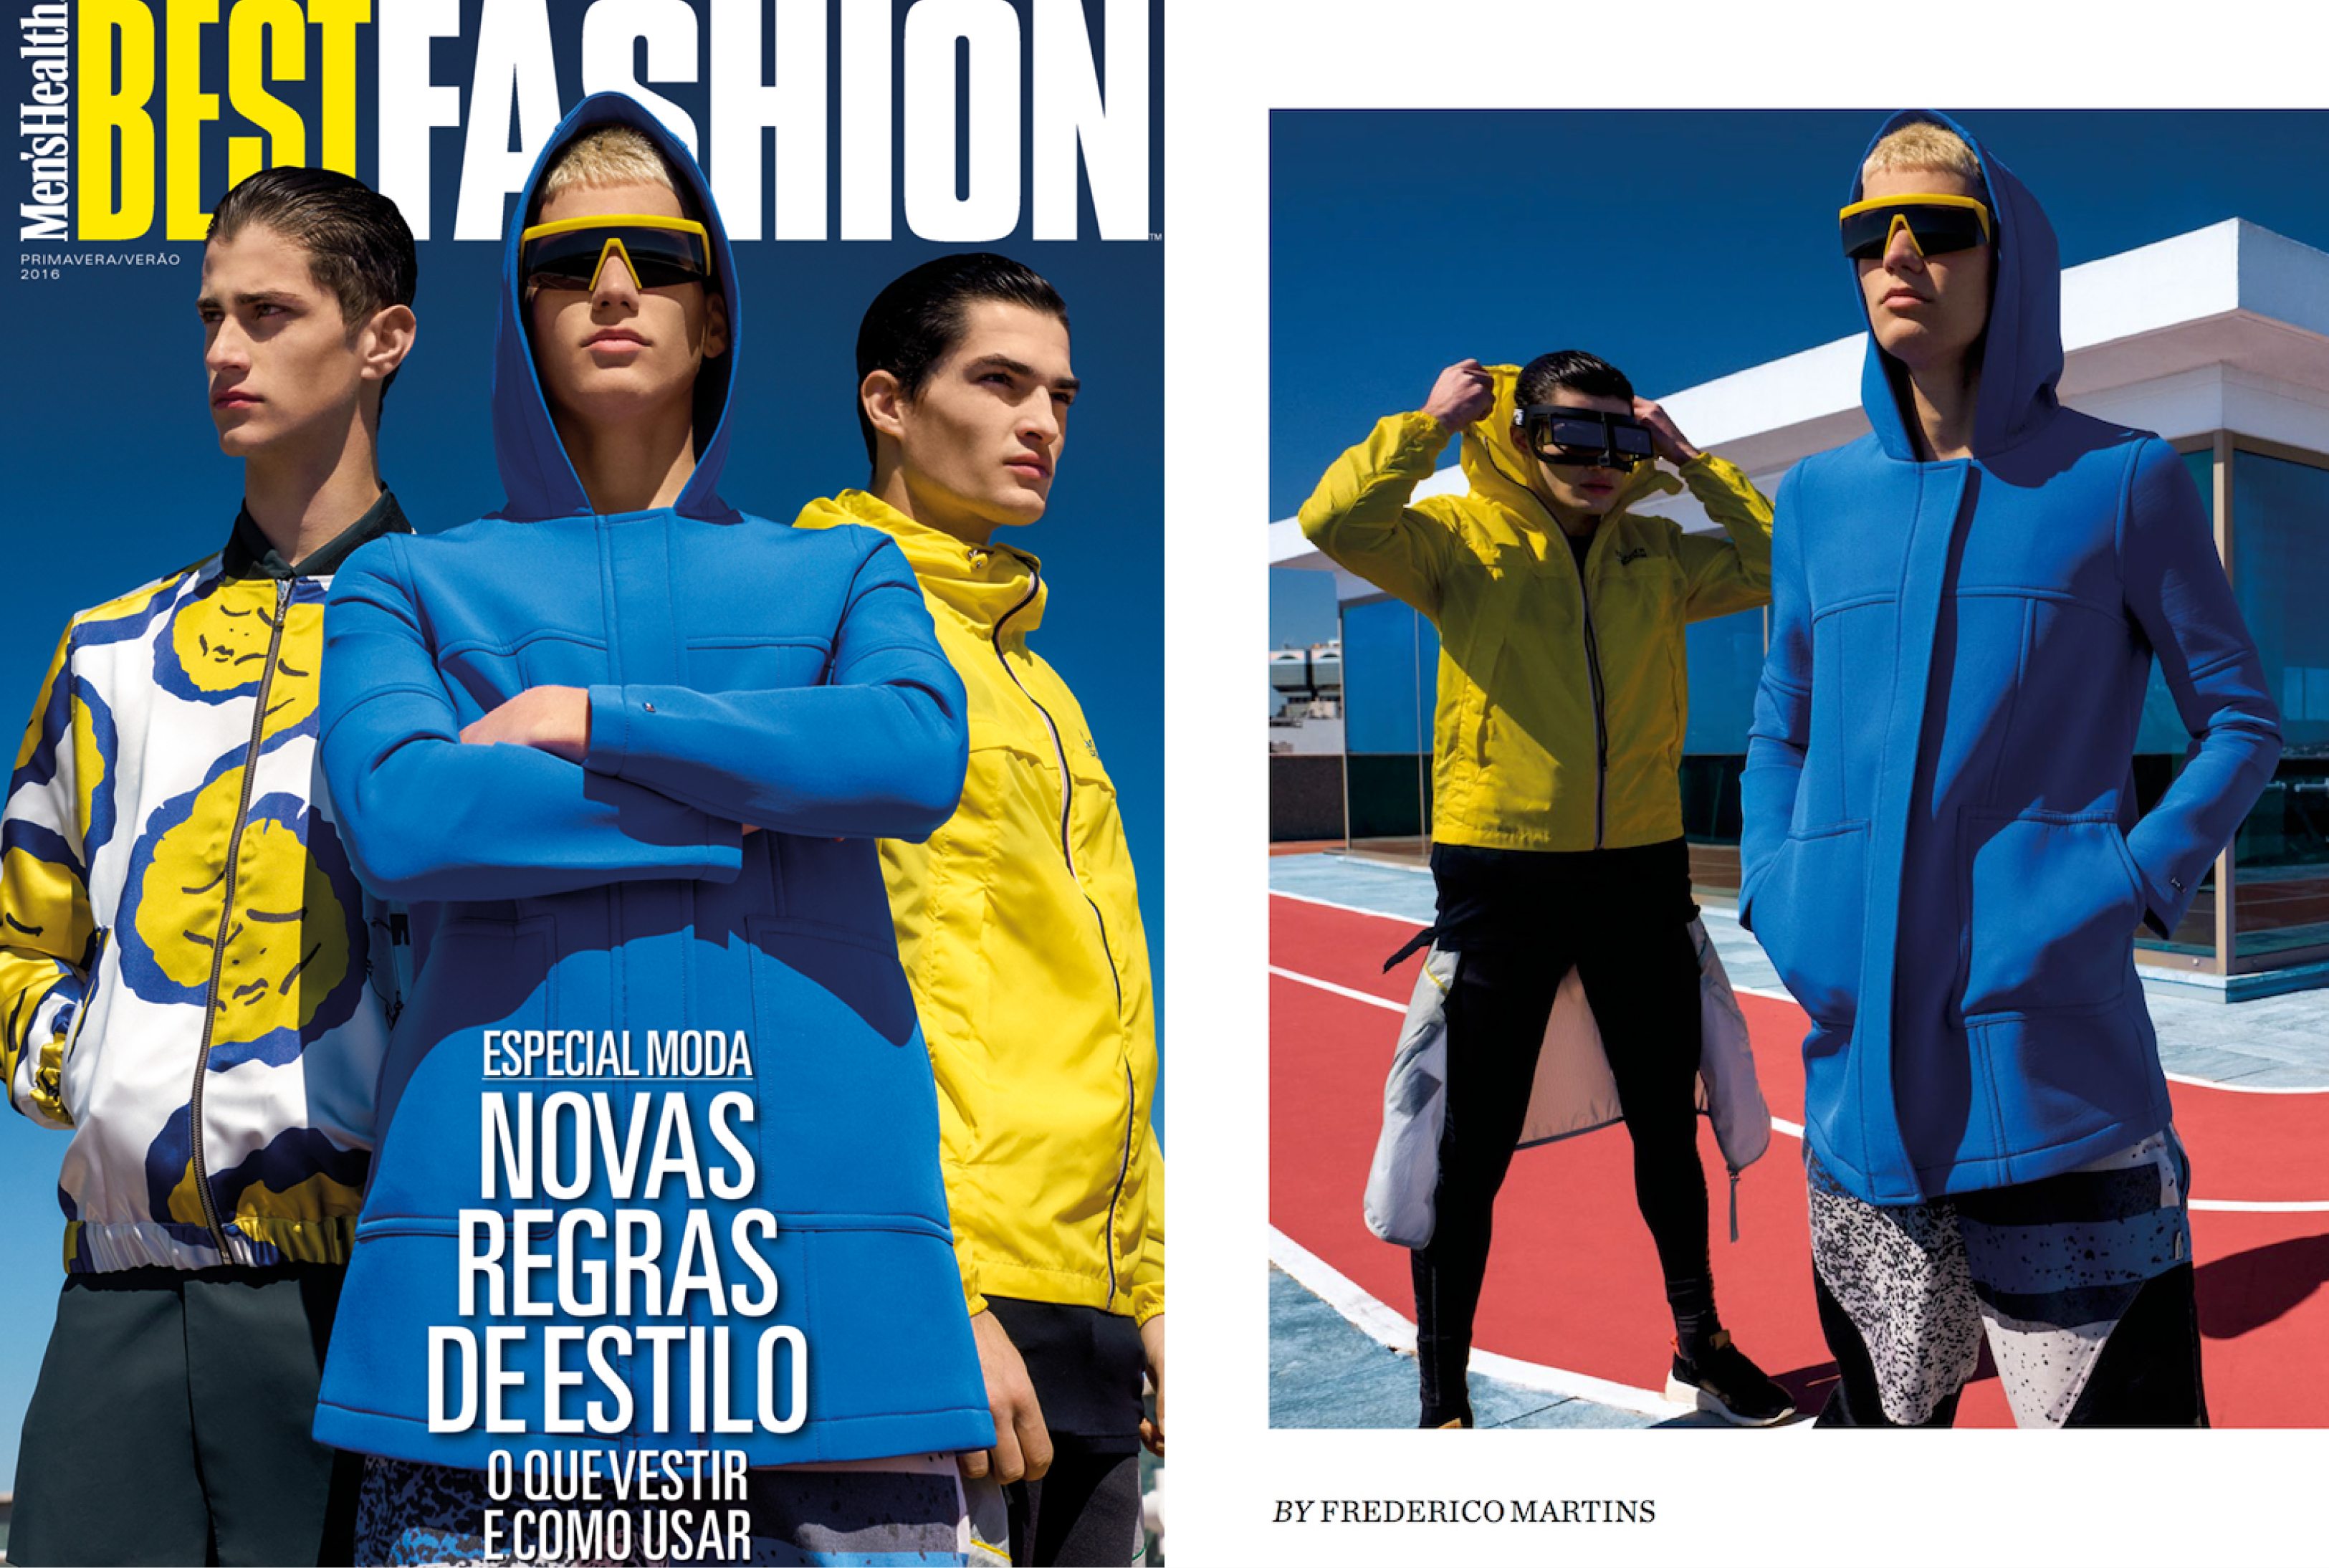 MYKITA & BERNHARD WILLHELM sunglasses VICE featured in Men's Health Best Fashion Portugal